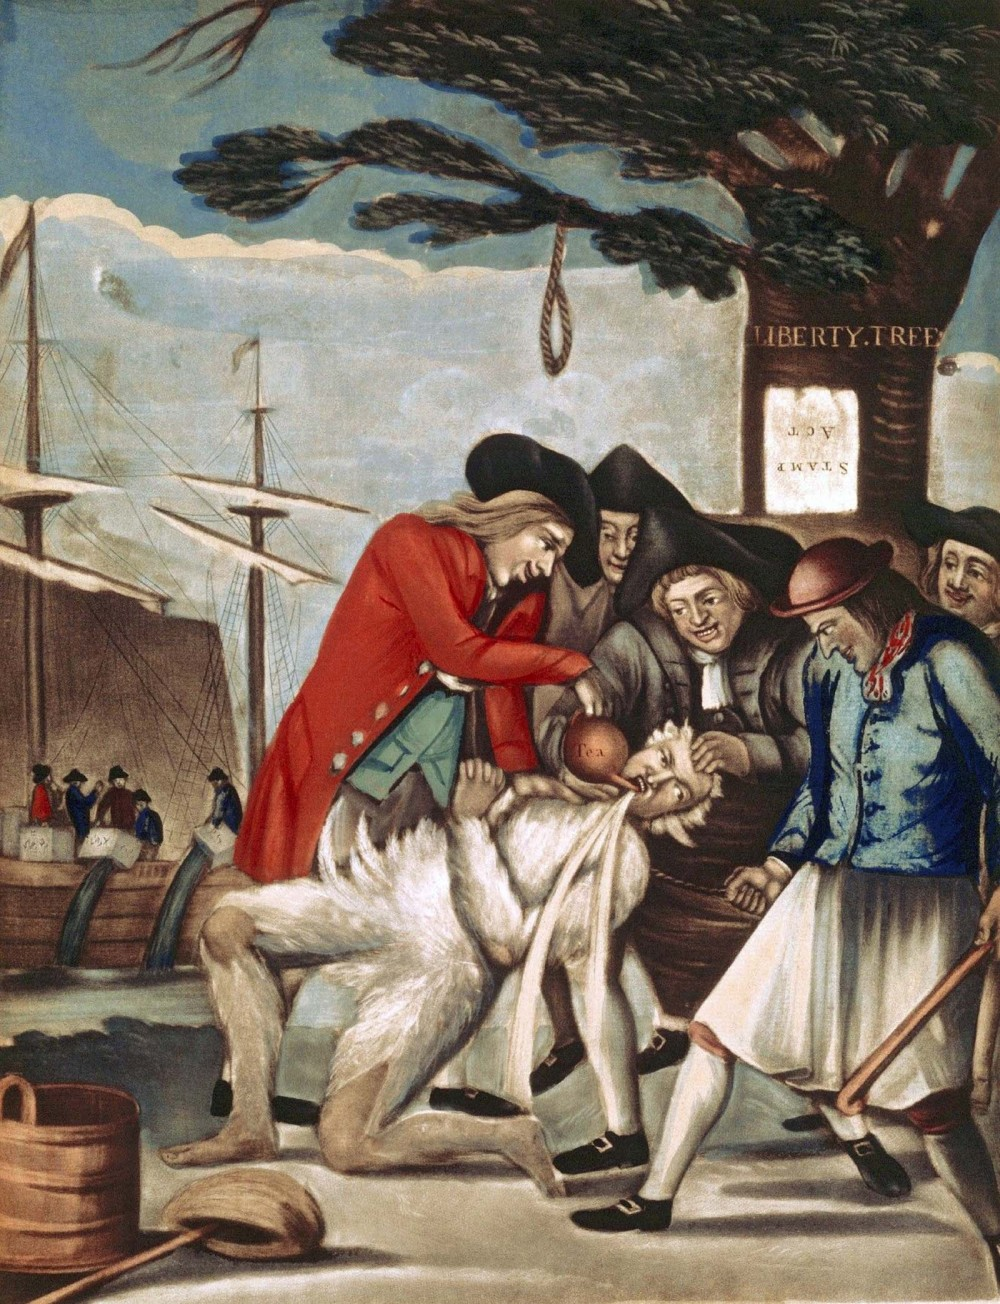 "Violent protest by groups like the Sons of Liberty created quite a stir both in the colonies and in England itself. While extreme acts like the tarring and feathering of Boston's Commissioner of Customs in 1774 propagated more protest against symbols of Parliament's tyranny throughout the colonies, violent demonstrations were regarded as acts of terrorism by British officials. This print of the 1774 event was from the British perspective, picturing the Sons as brutal instigators with almost demonic smiles on their faces as they enacted this excruciating punishment on the Custom Commissioner. Philip Dawe (attributed), ""The Bostonians Paying the Excise-man, or Tarring and Feathering,"" Wikimedia, http://commons.wikimedia.org/wiki/File:Philip_Dawe_%28attributed%29,_The_Bostonians_Paying_the_Excise-man,_or_Tarring_and_Feathering_%281774%29.jpg."